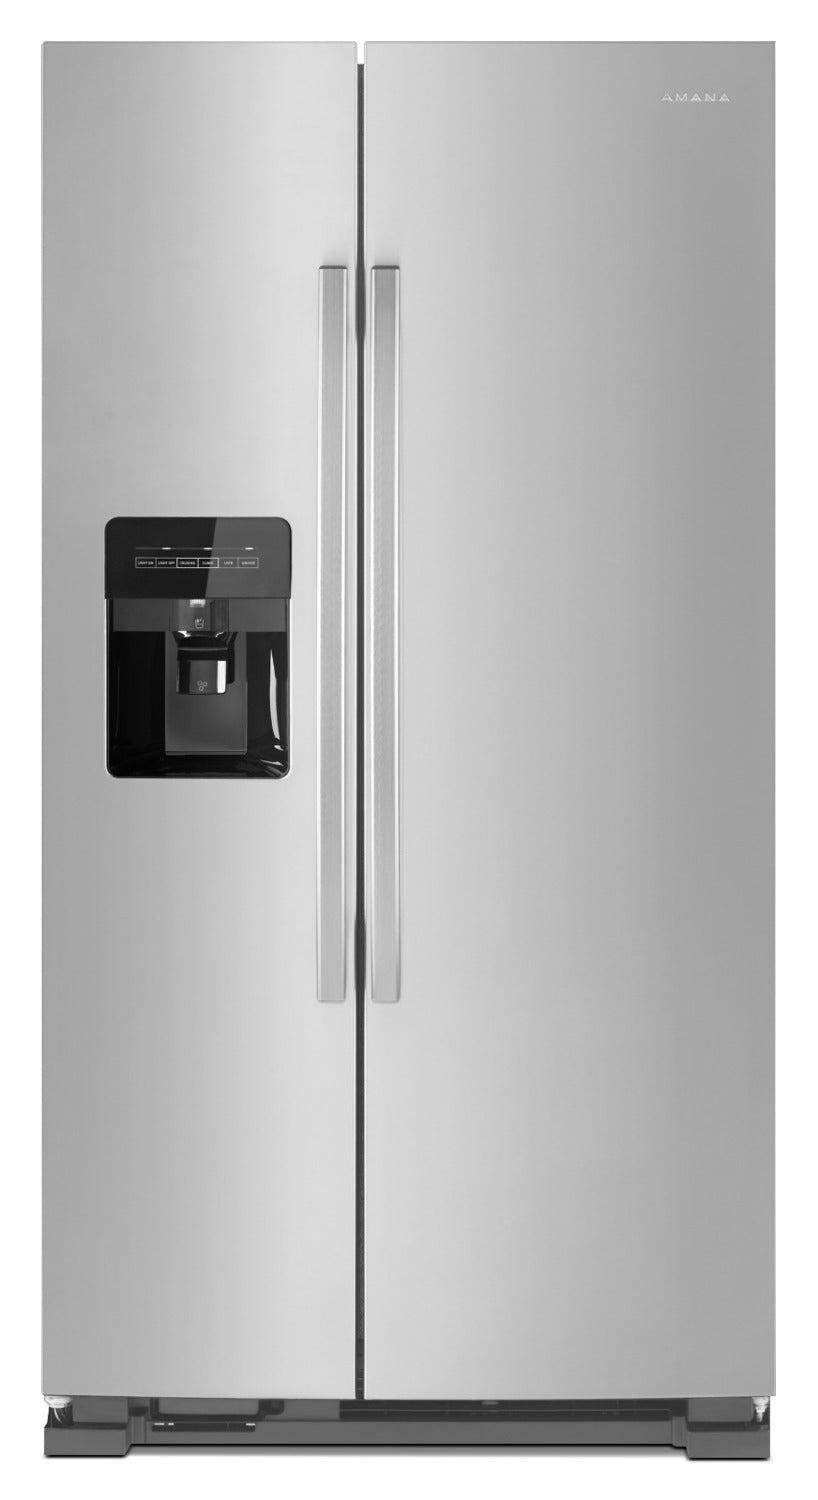 Grab N Go How To Use The Humidity Controlled Crisper Kenmore